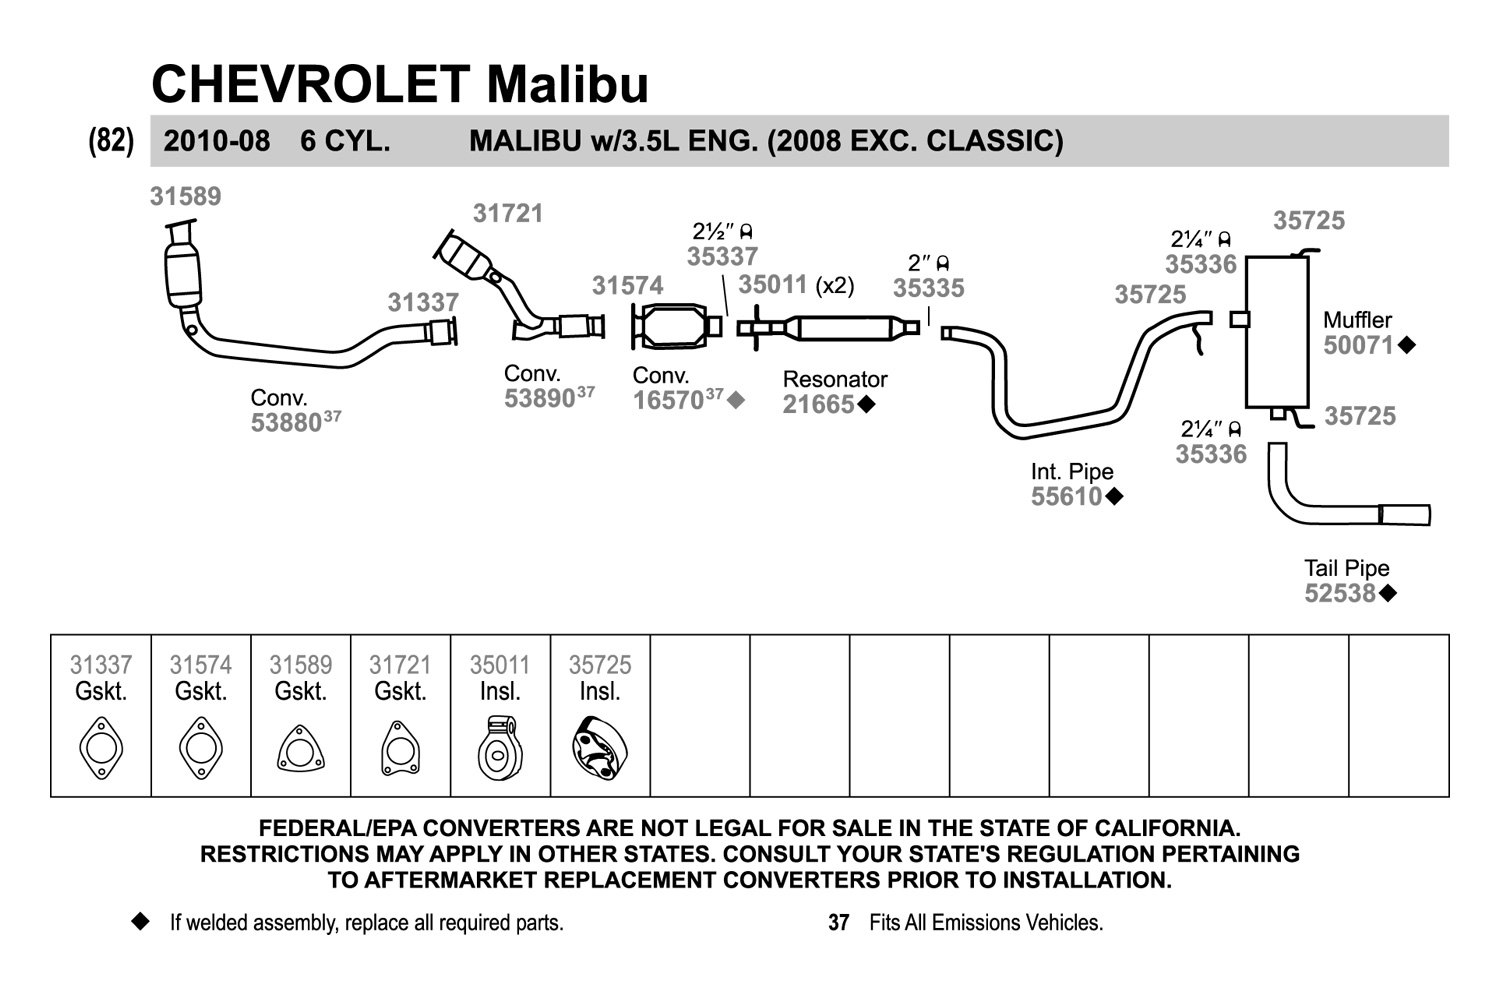 2001 Chevy Malibu Exhaust System Diagram Wiring Diagrams Engine Honda Accord Systems Performance Replacement